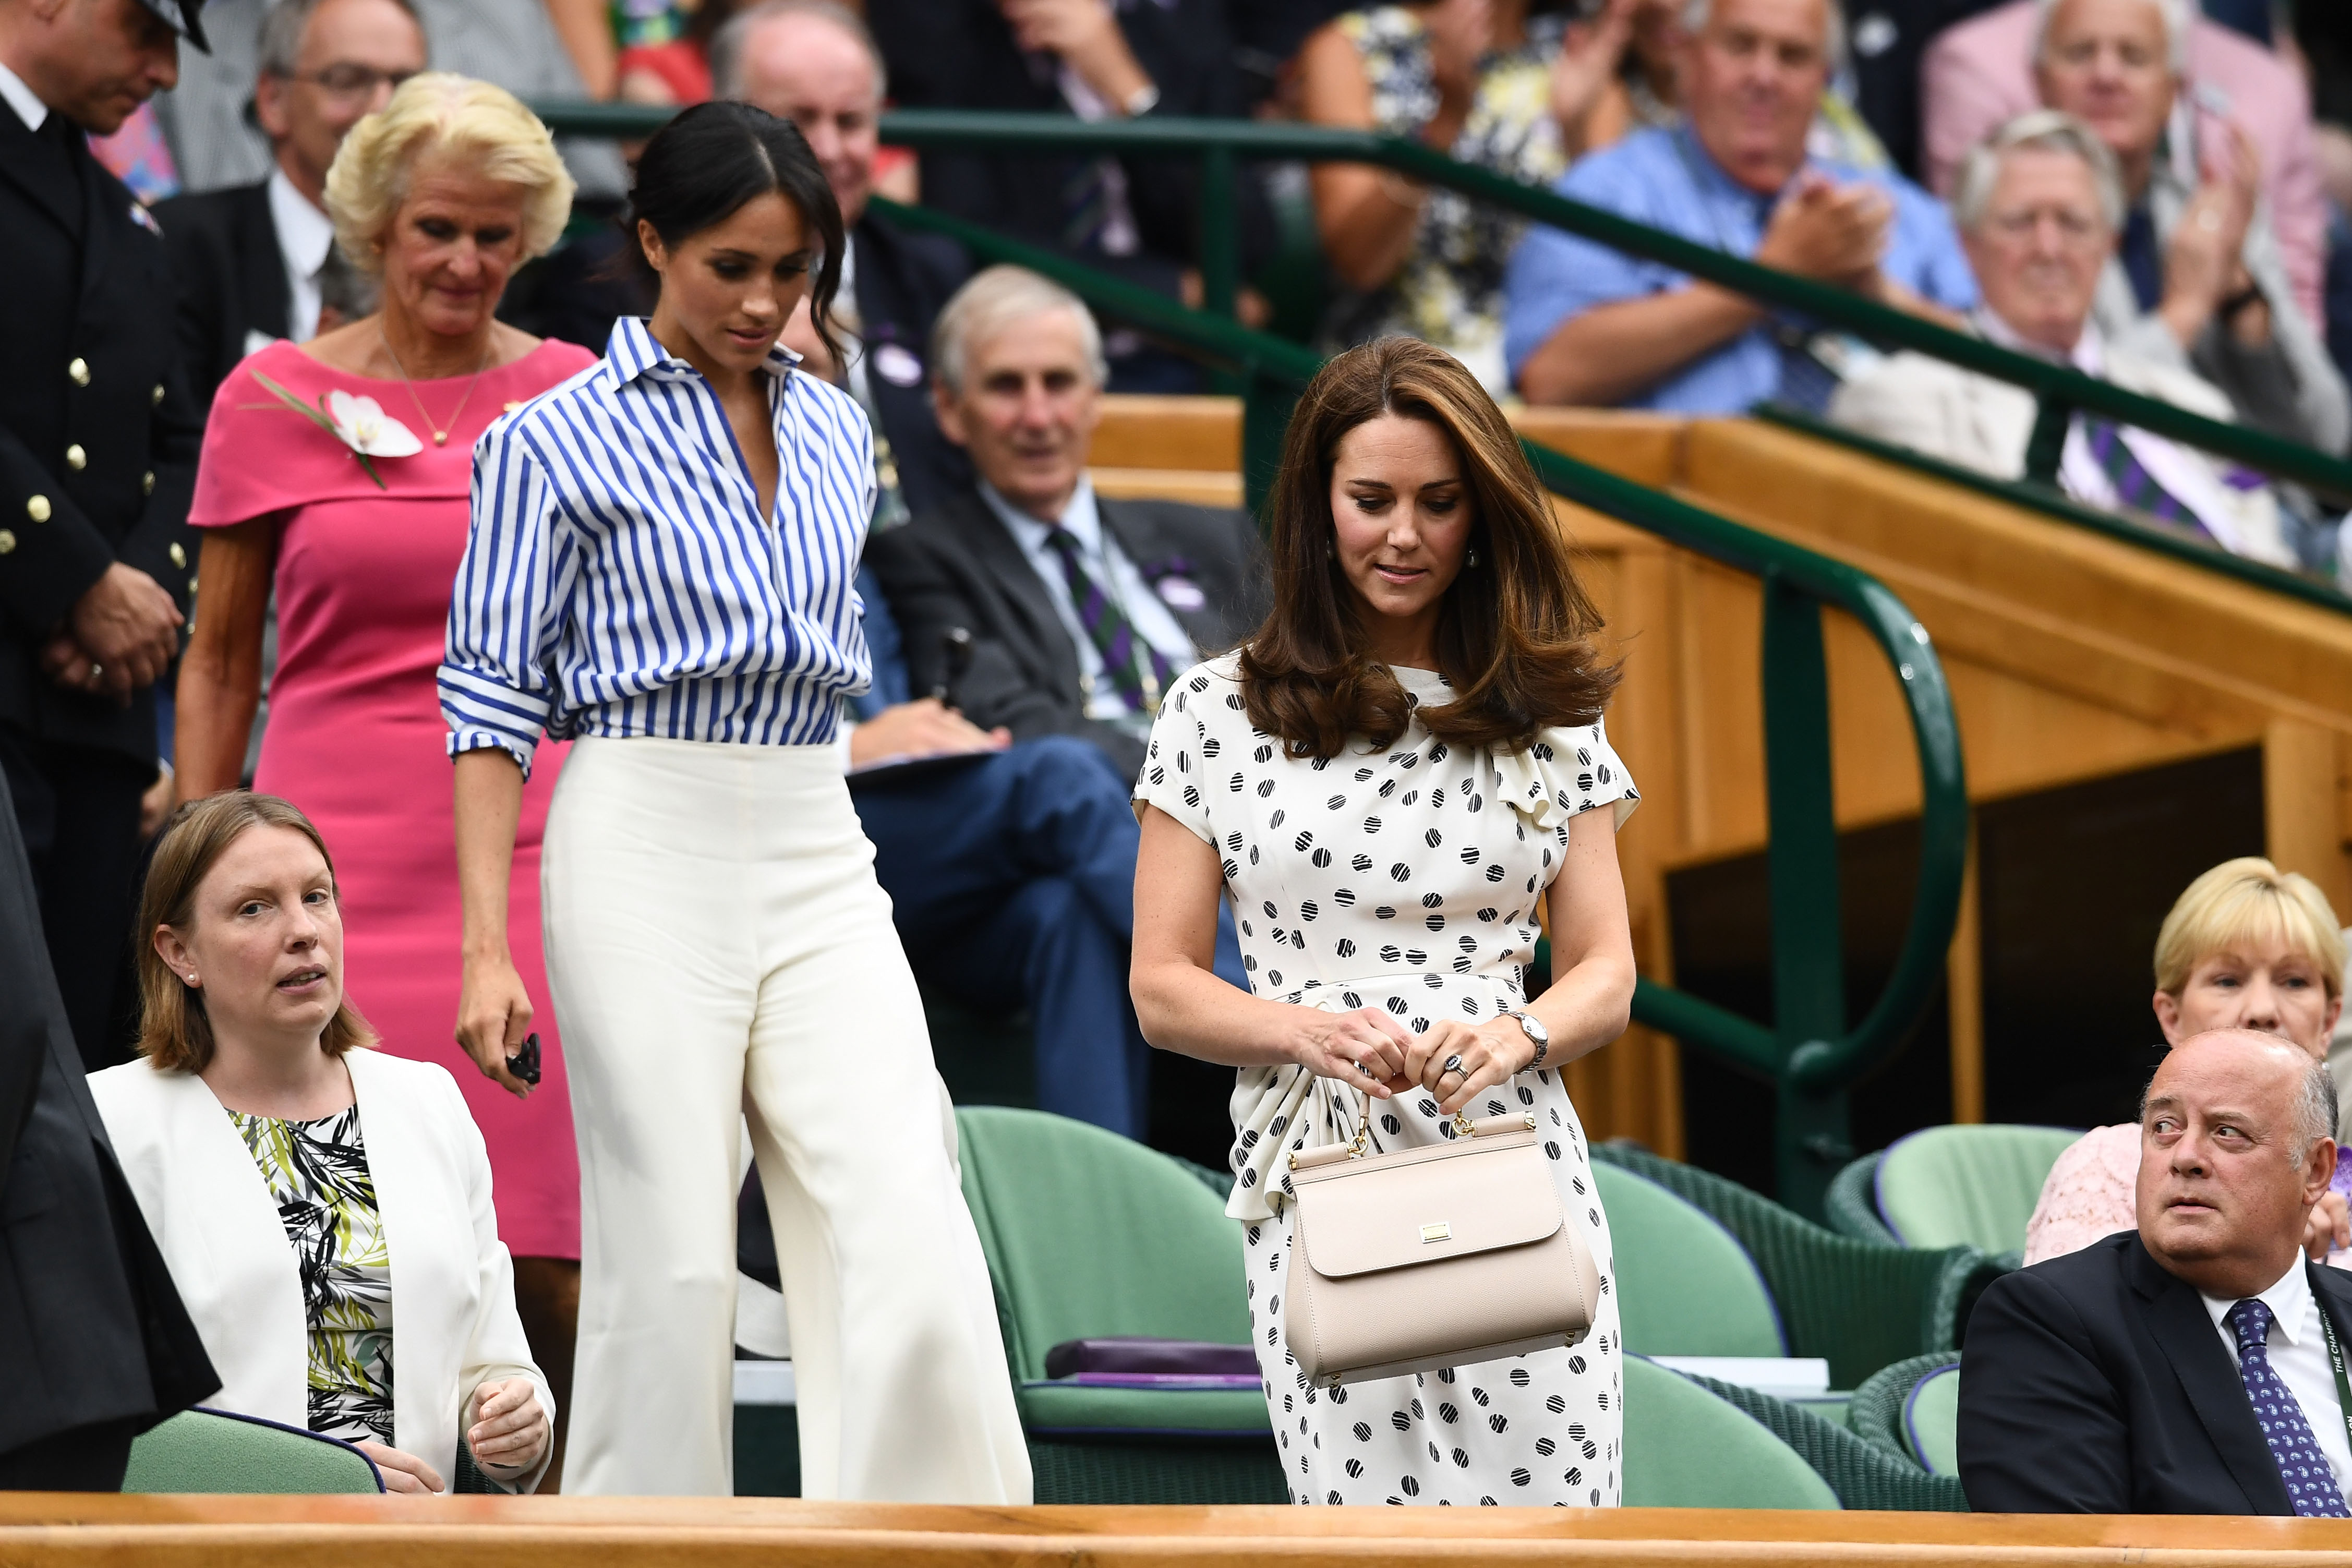 Kate and Meghan looked elegant as they kept their appearances and clothing simple. (Getty Images)